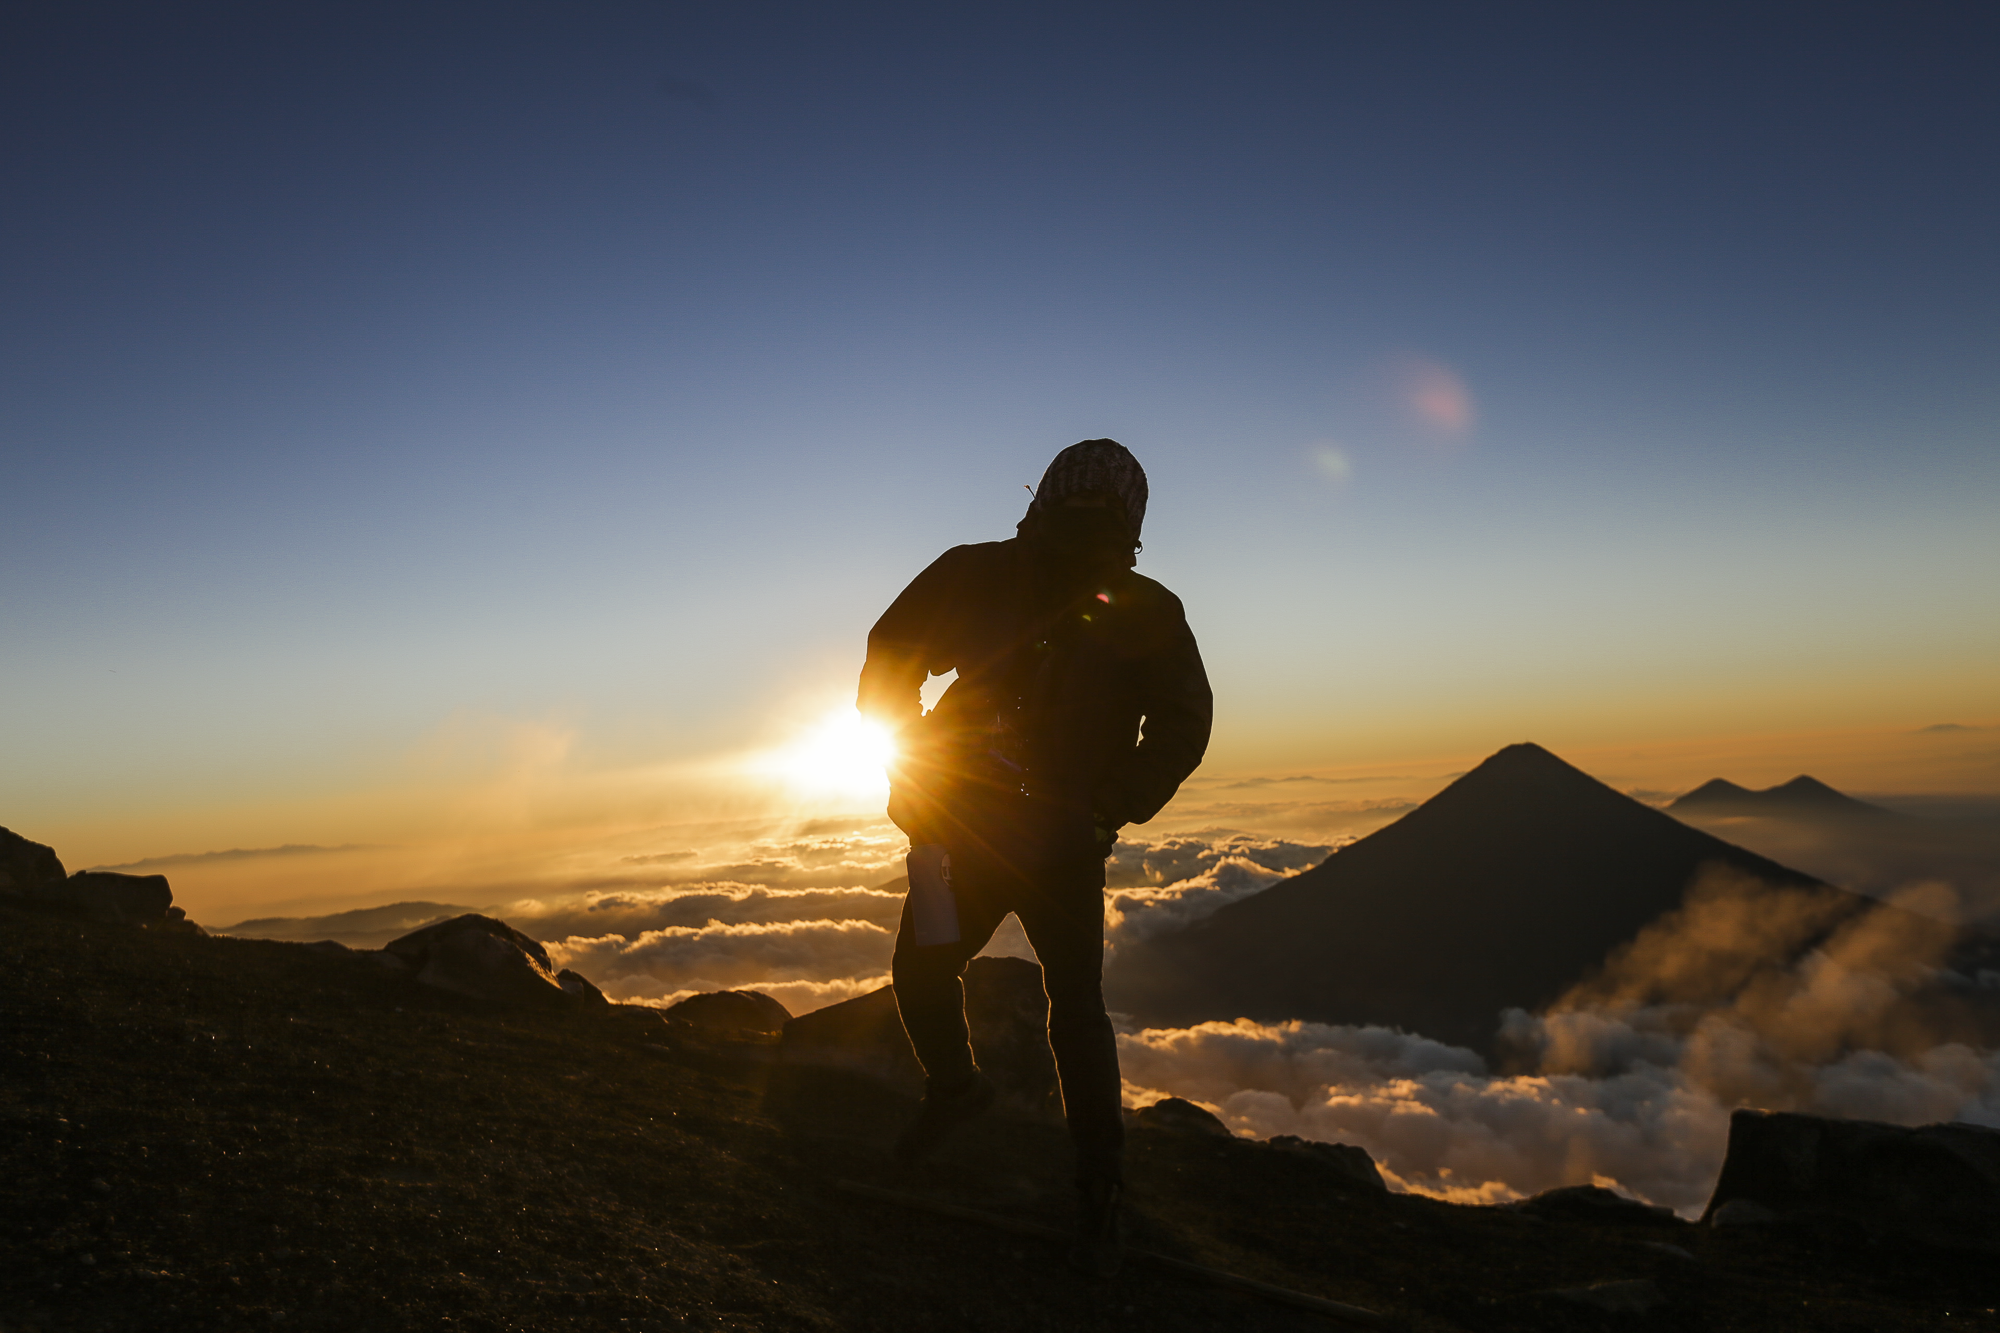 Jason Gegere reaches the top of Volcán Acatenango at 5:00 am just as the sun begins the rise. Acatenago lies next to Volcán Fuego, which an active volcano that erupts constantly throughout the day and night.